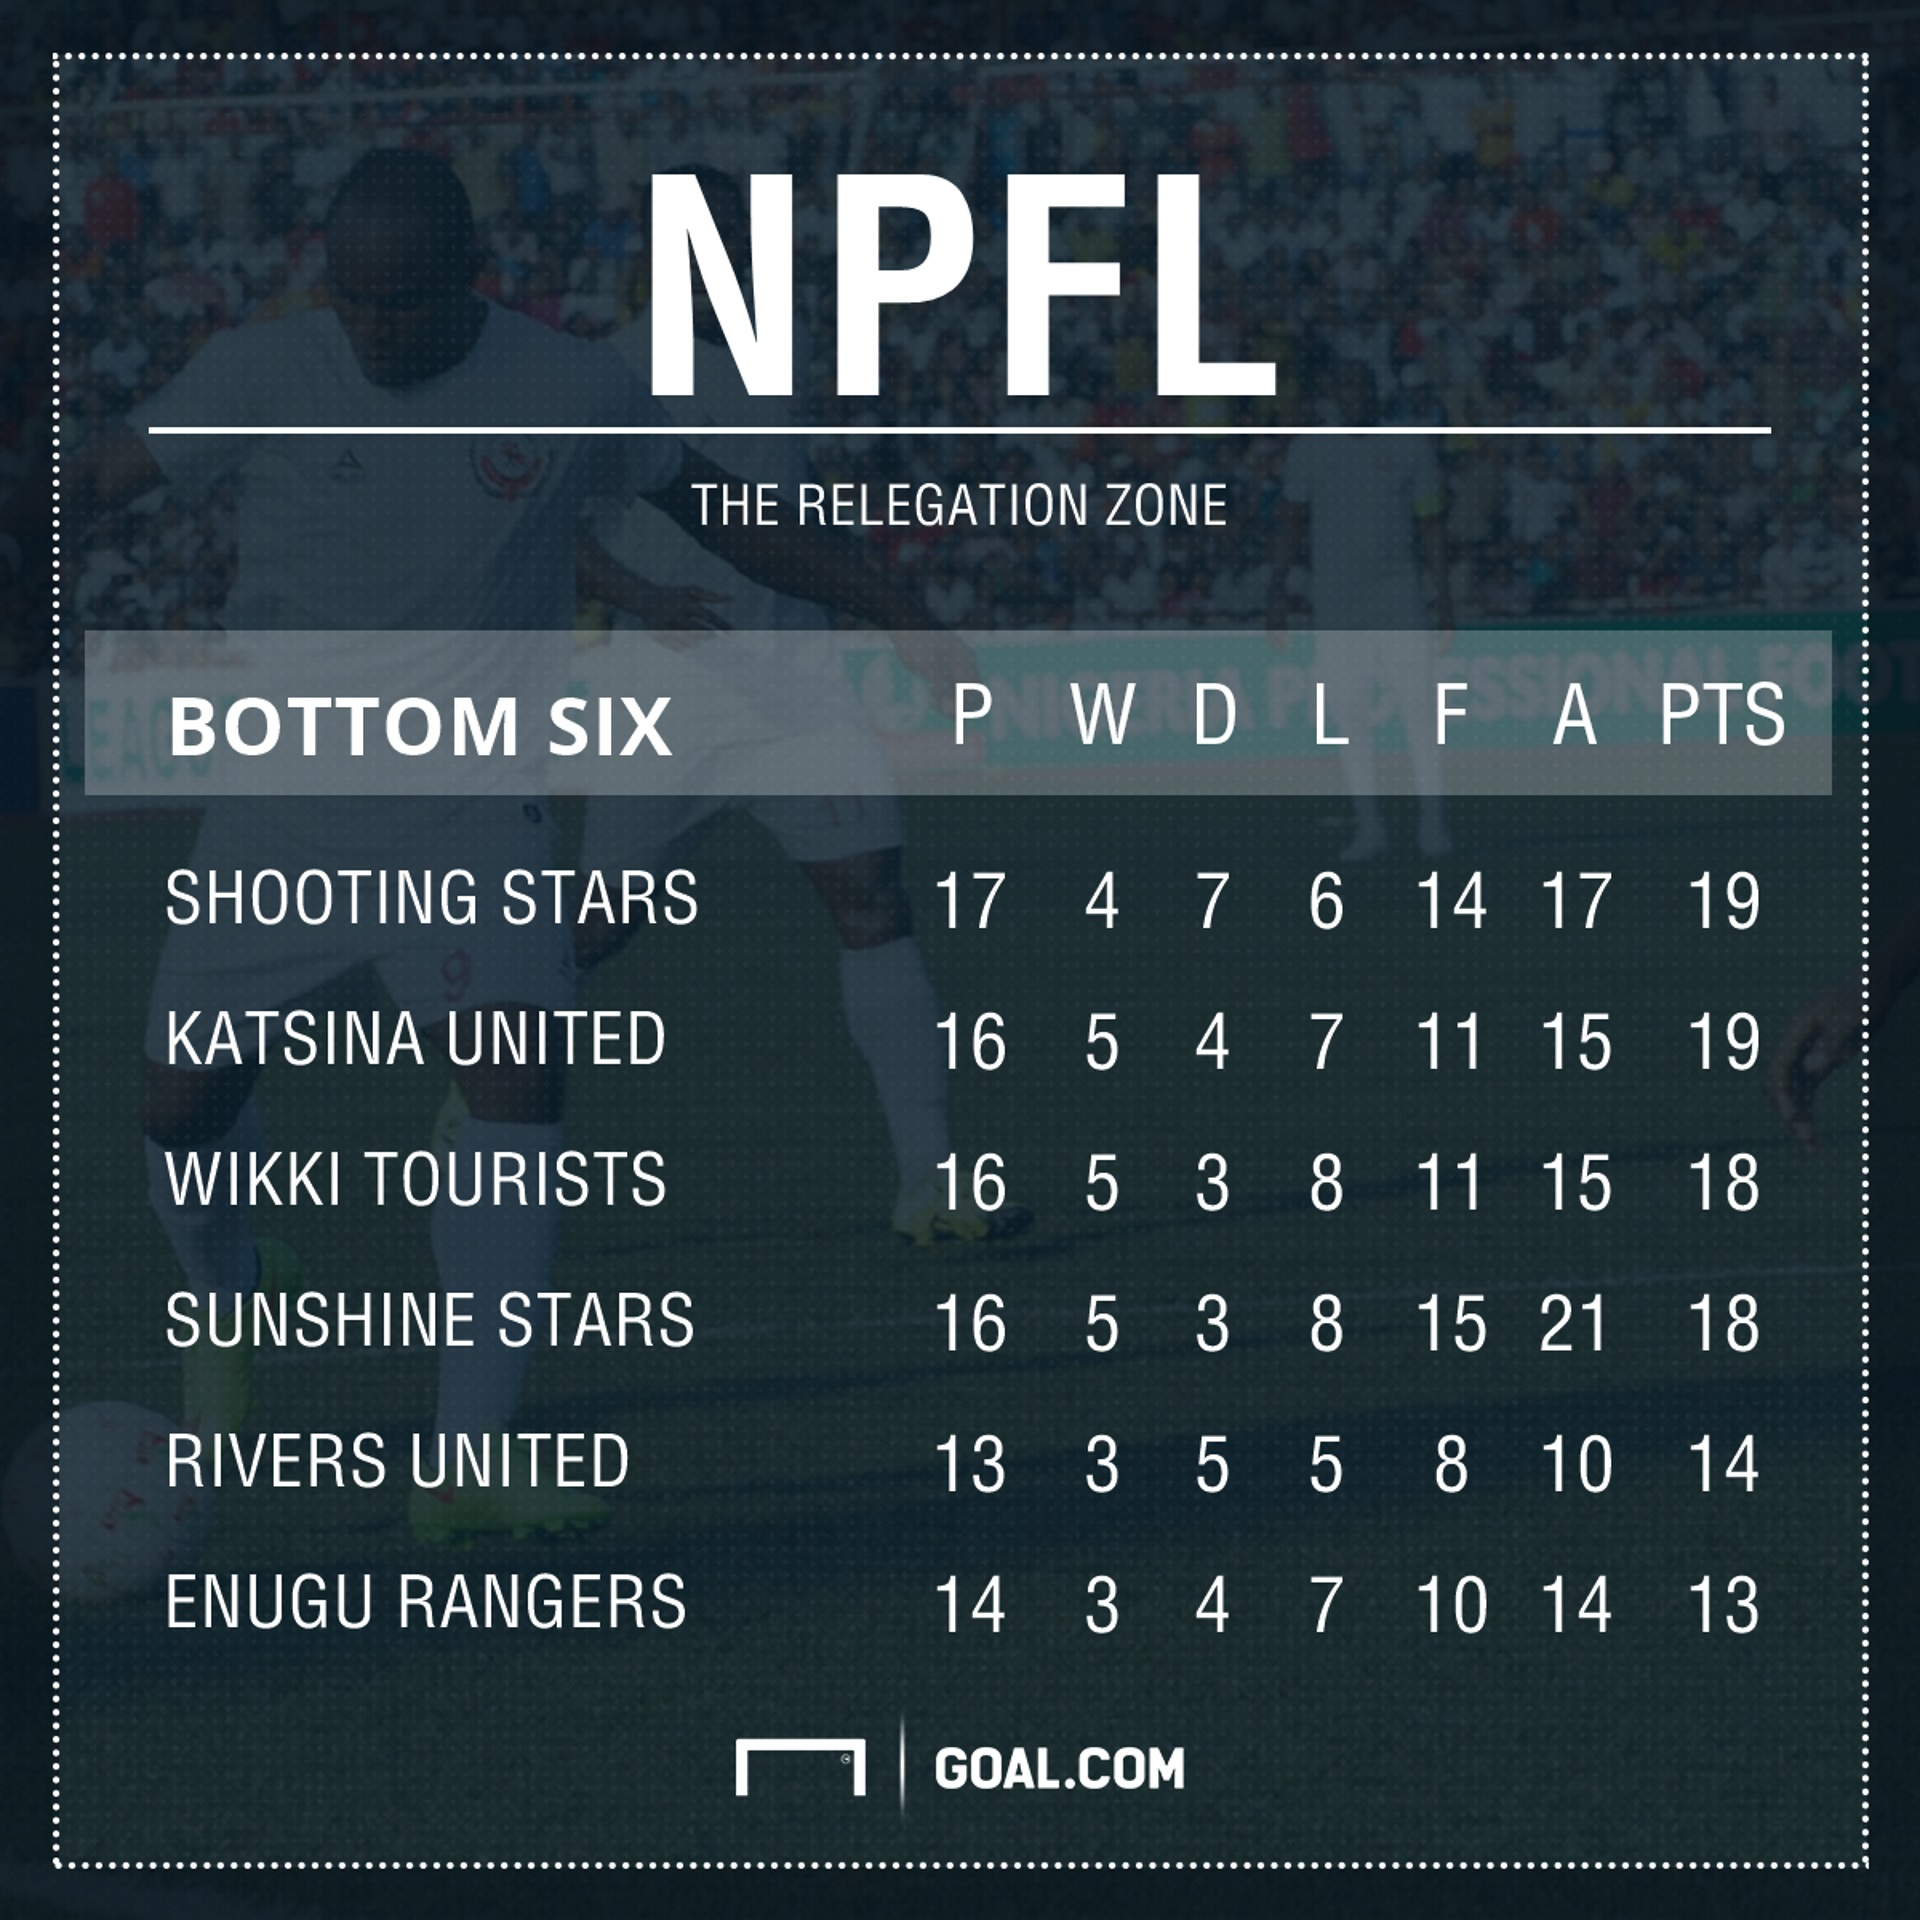 NPFL Relegation Zone